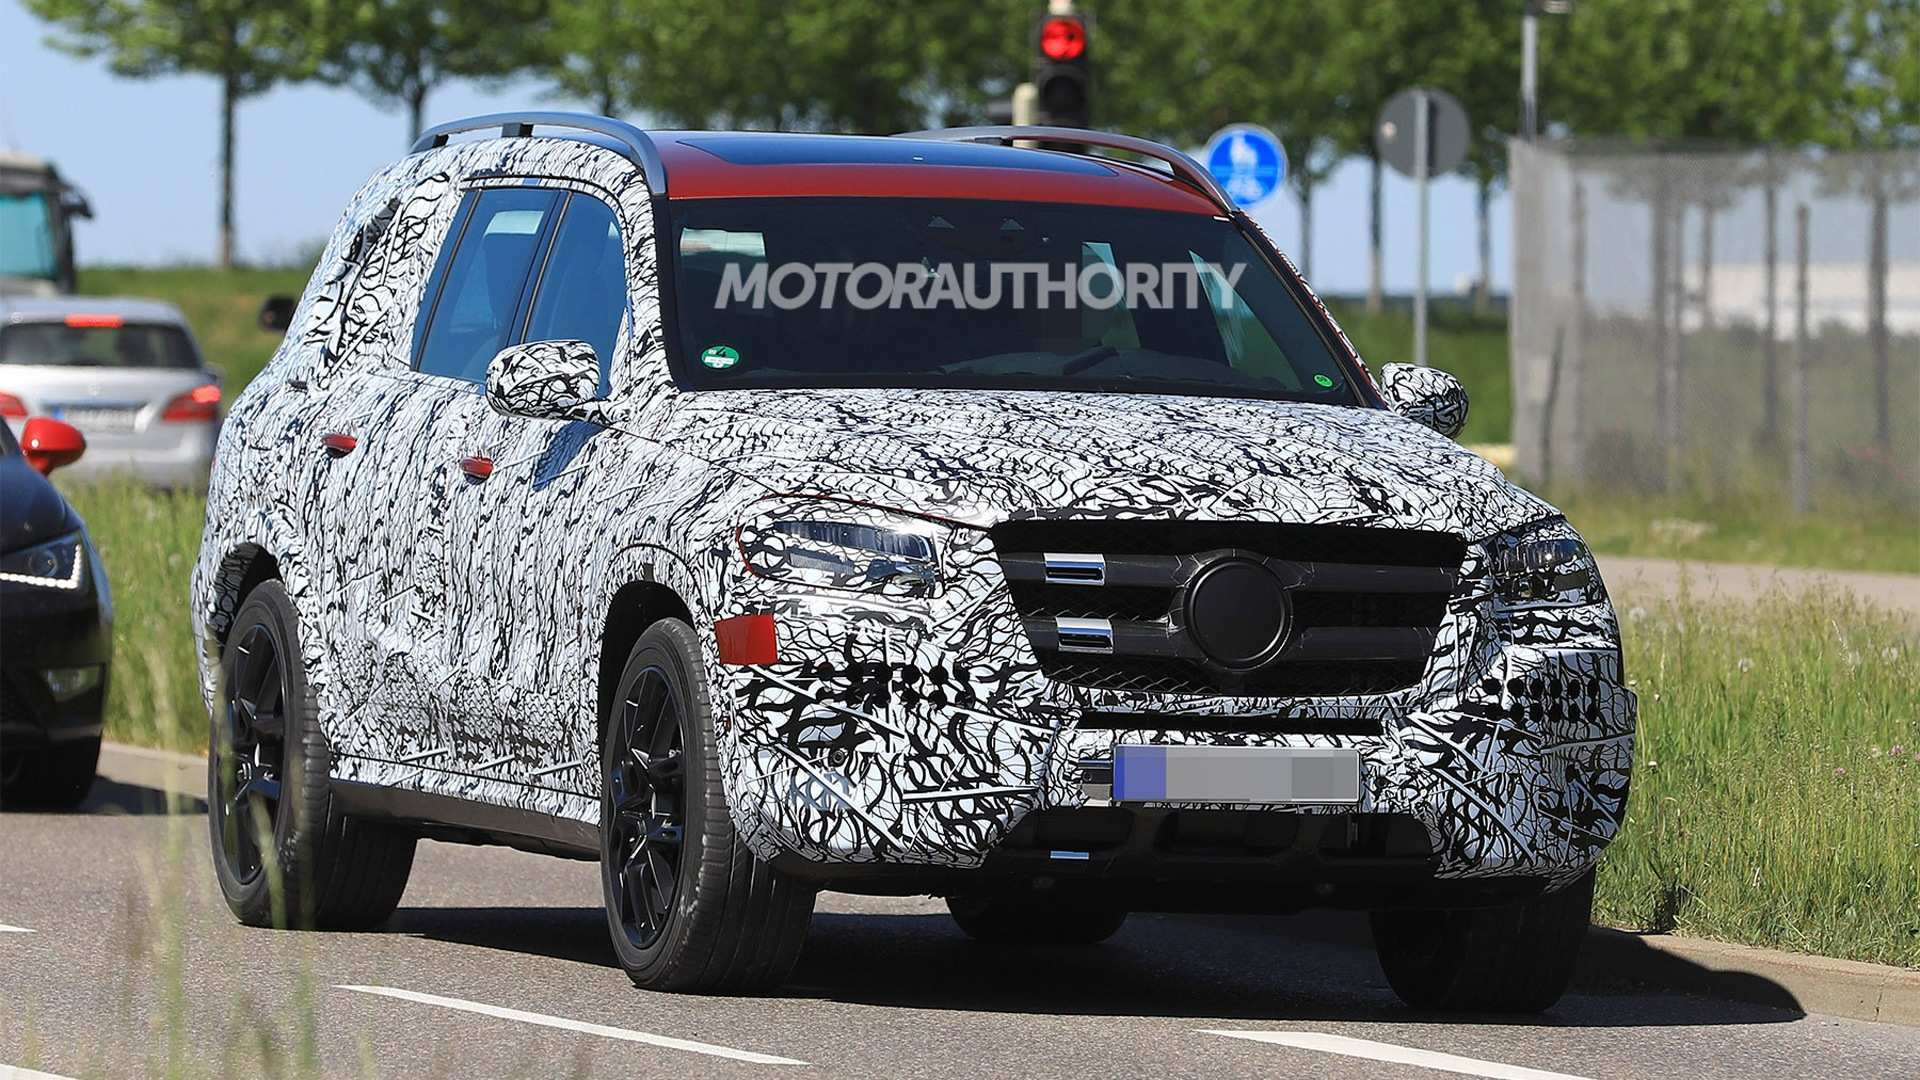 77 Great Mercedes Maybach Gls 2020 Pictures by Mercedes Maybach Gls 2020